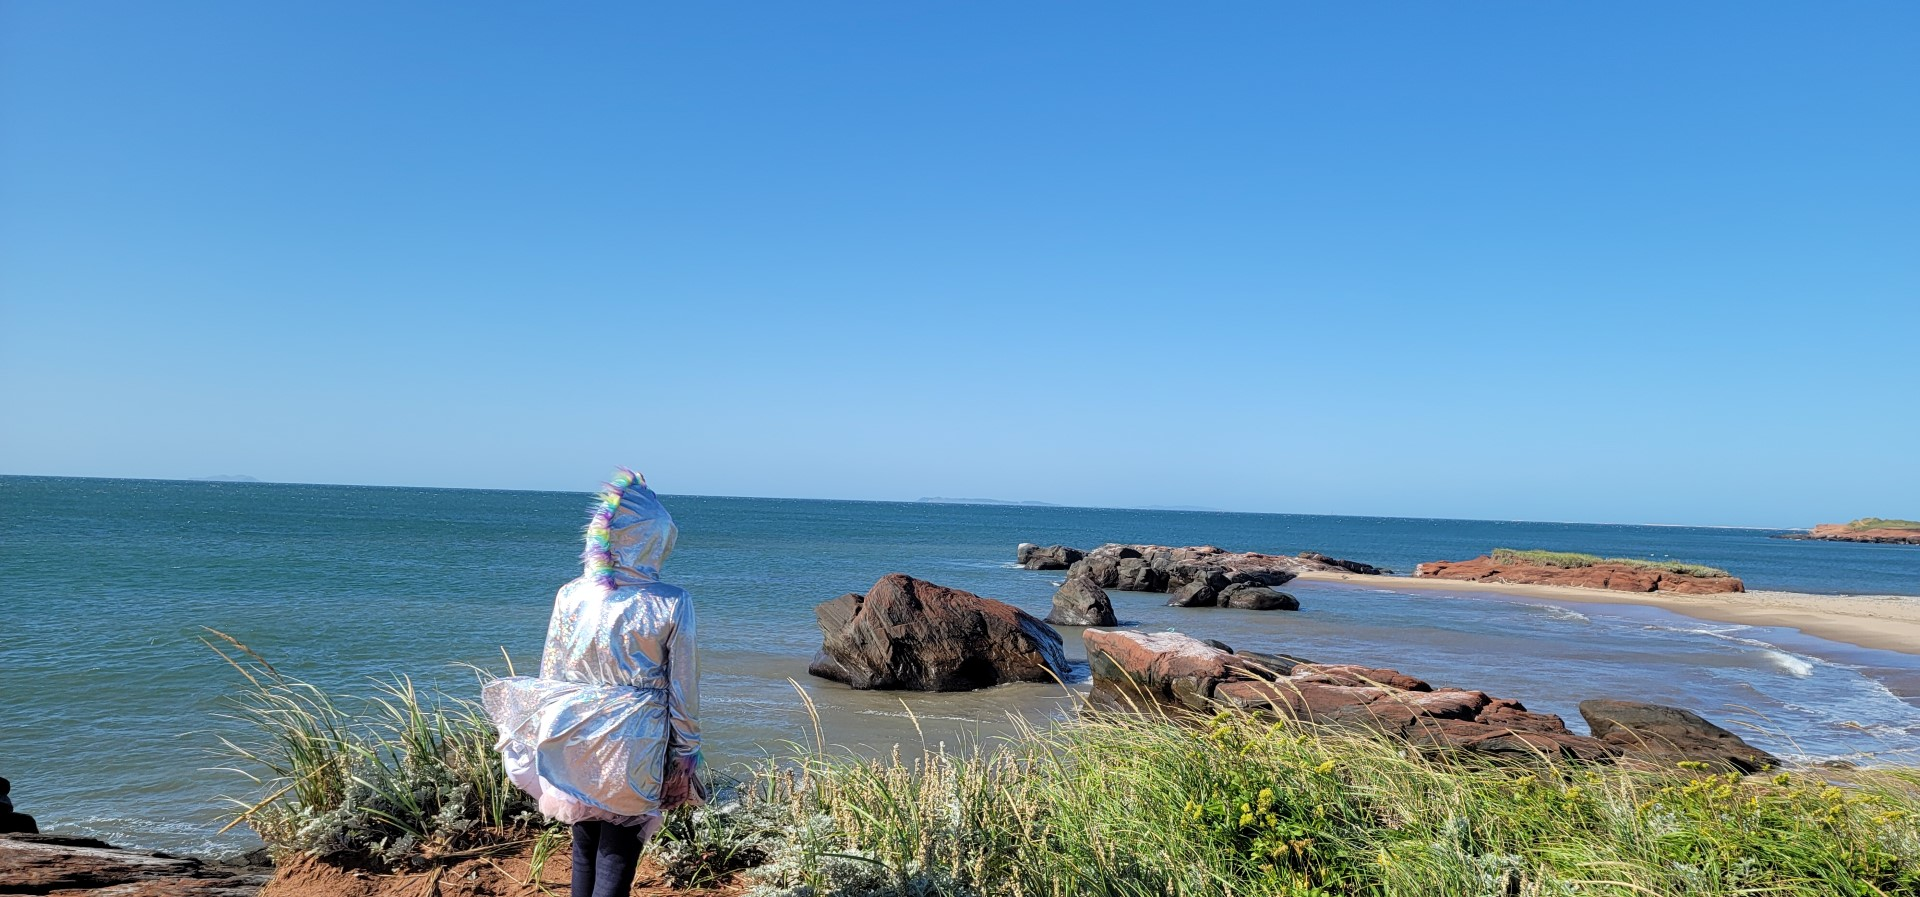 Child in silver jacket looking at water from Boudreau Island